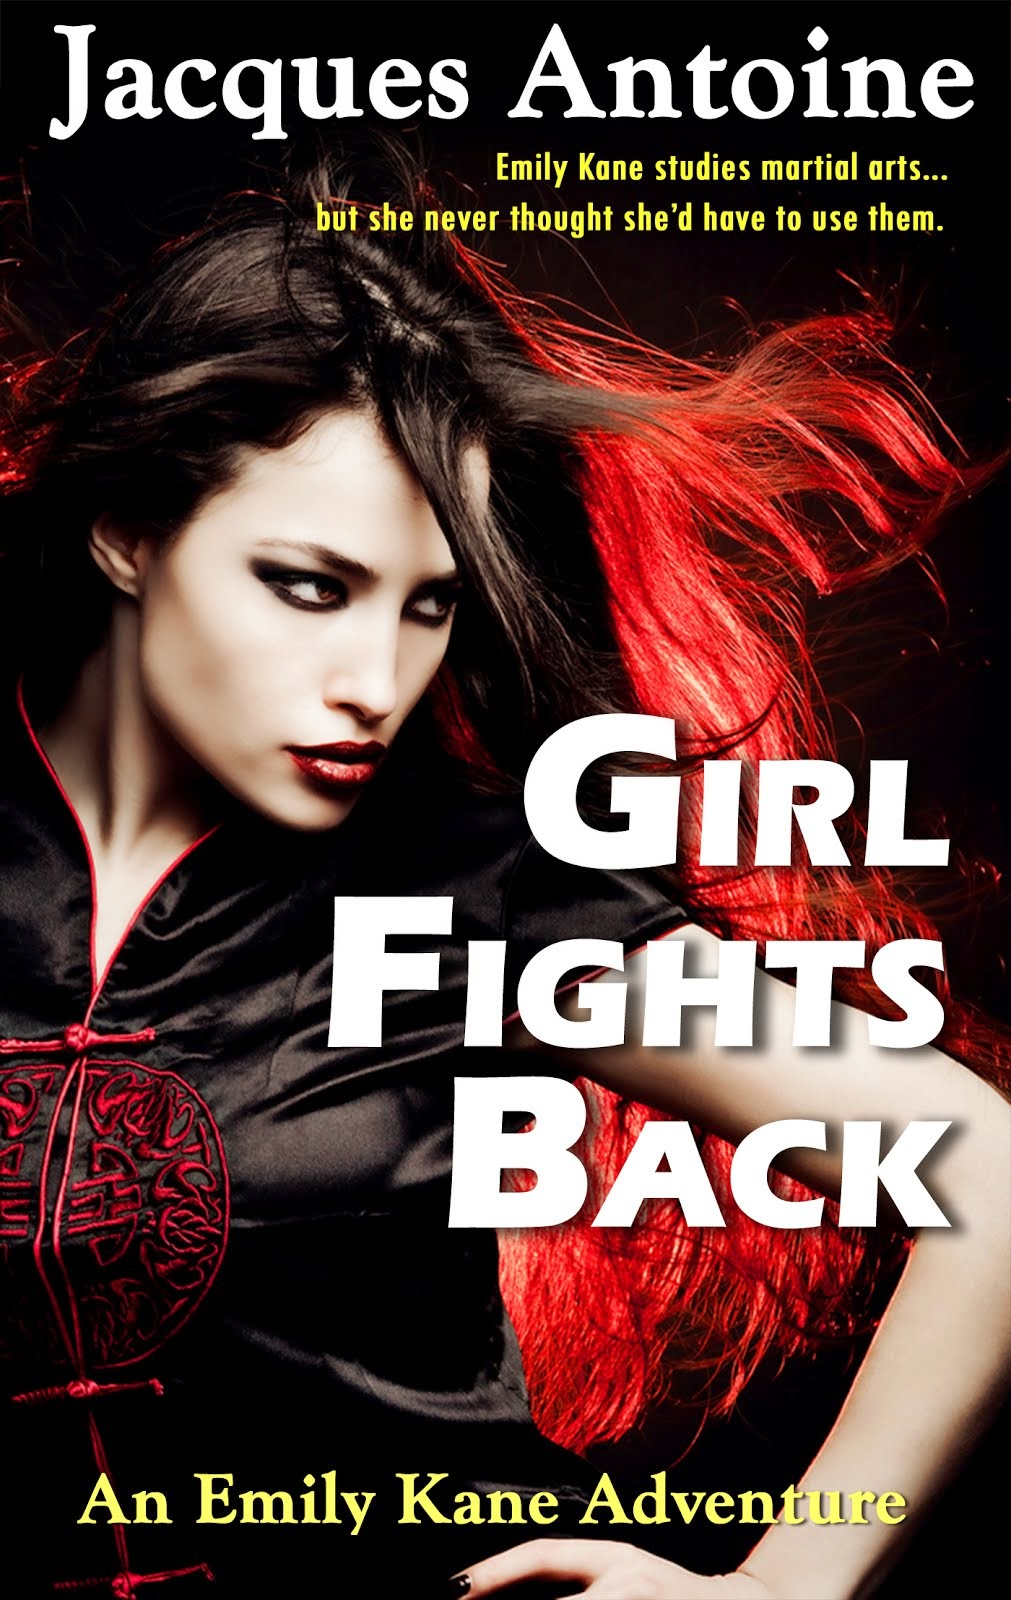 Girl Fights Back: Book 1 of The Emily Kane Adventures